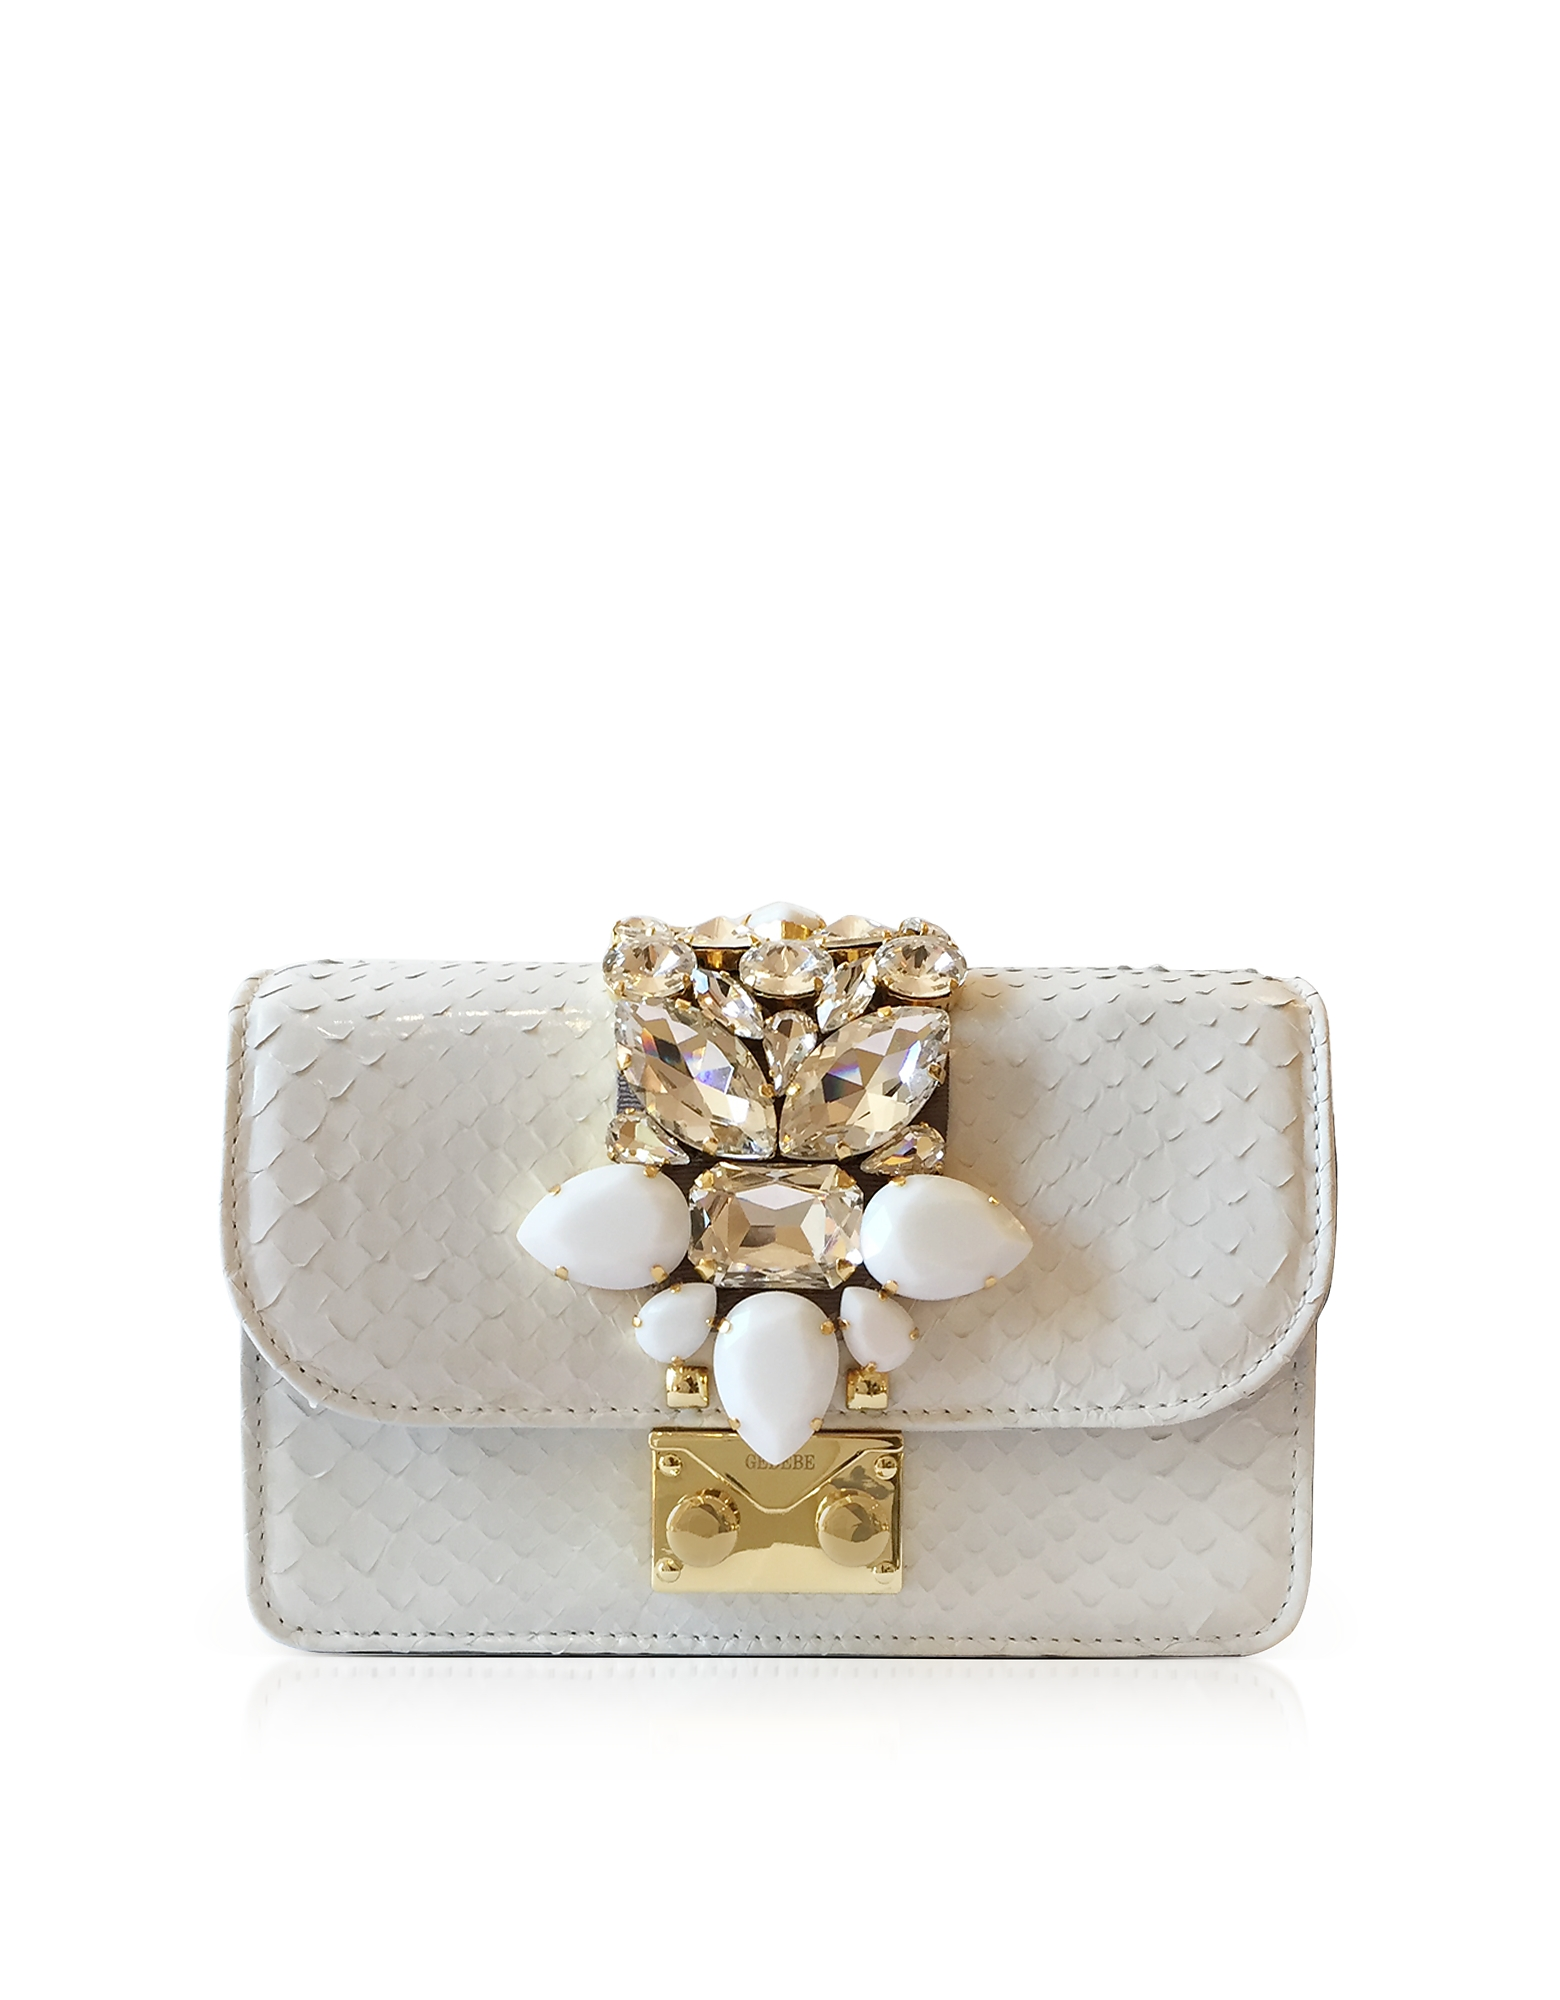 Gedebe Handbags, Mini Cliky White Python Clutch w/Crystals